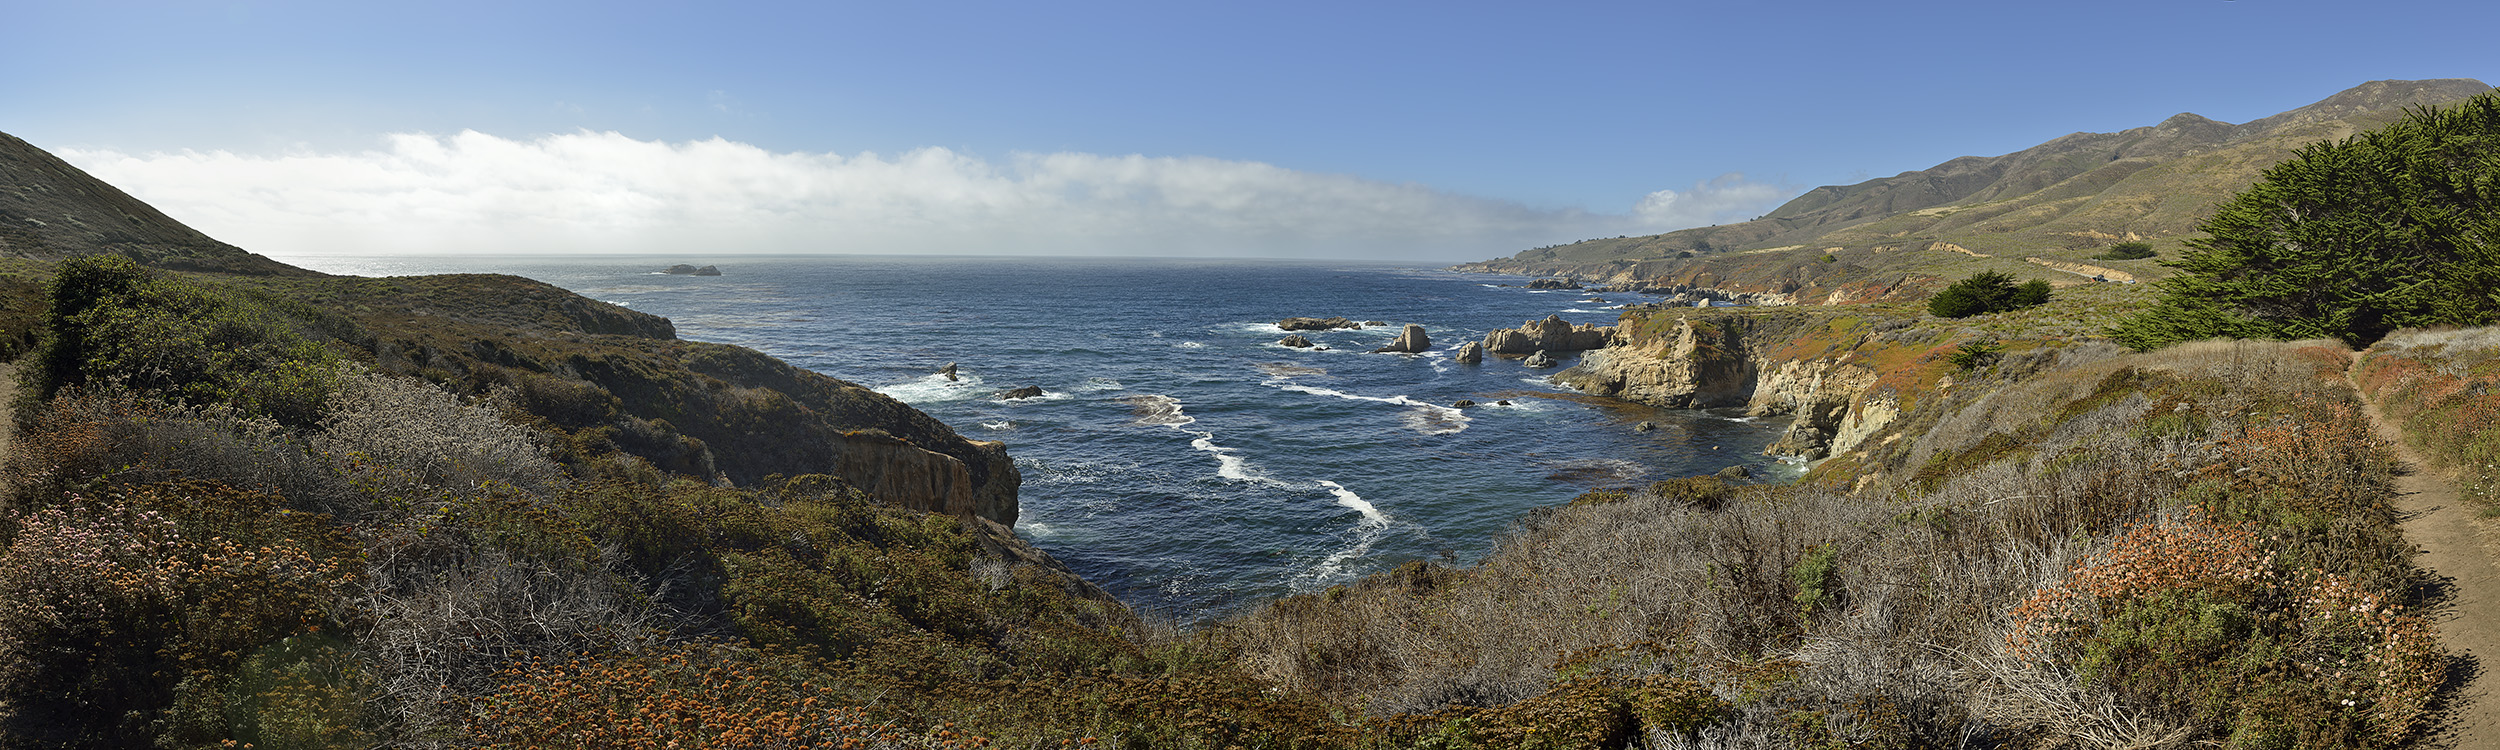 Granite PointTrail near Point Lobos